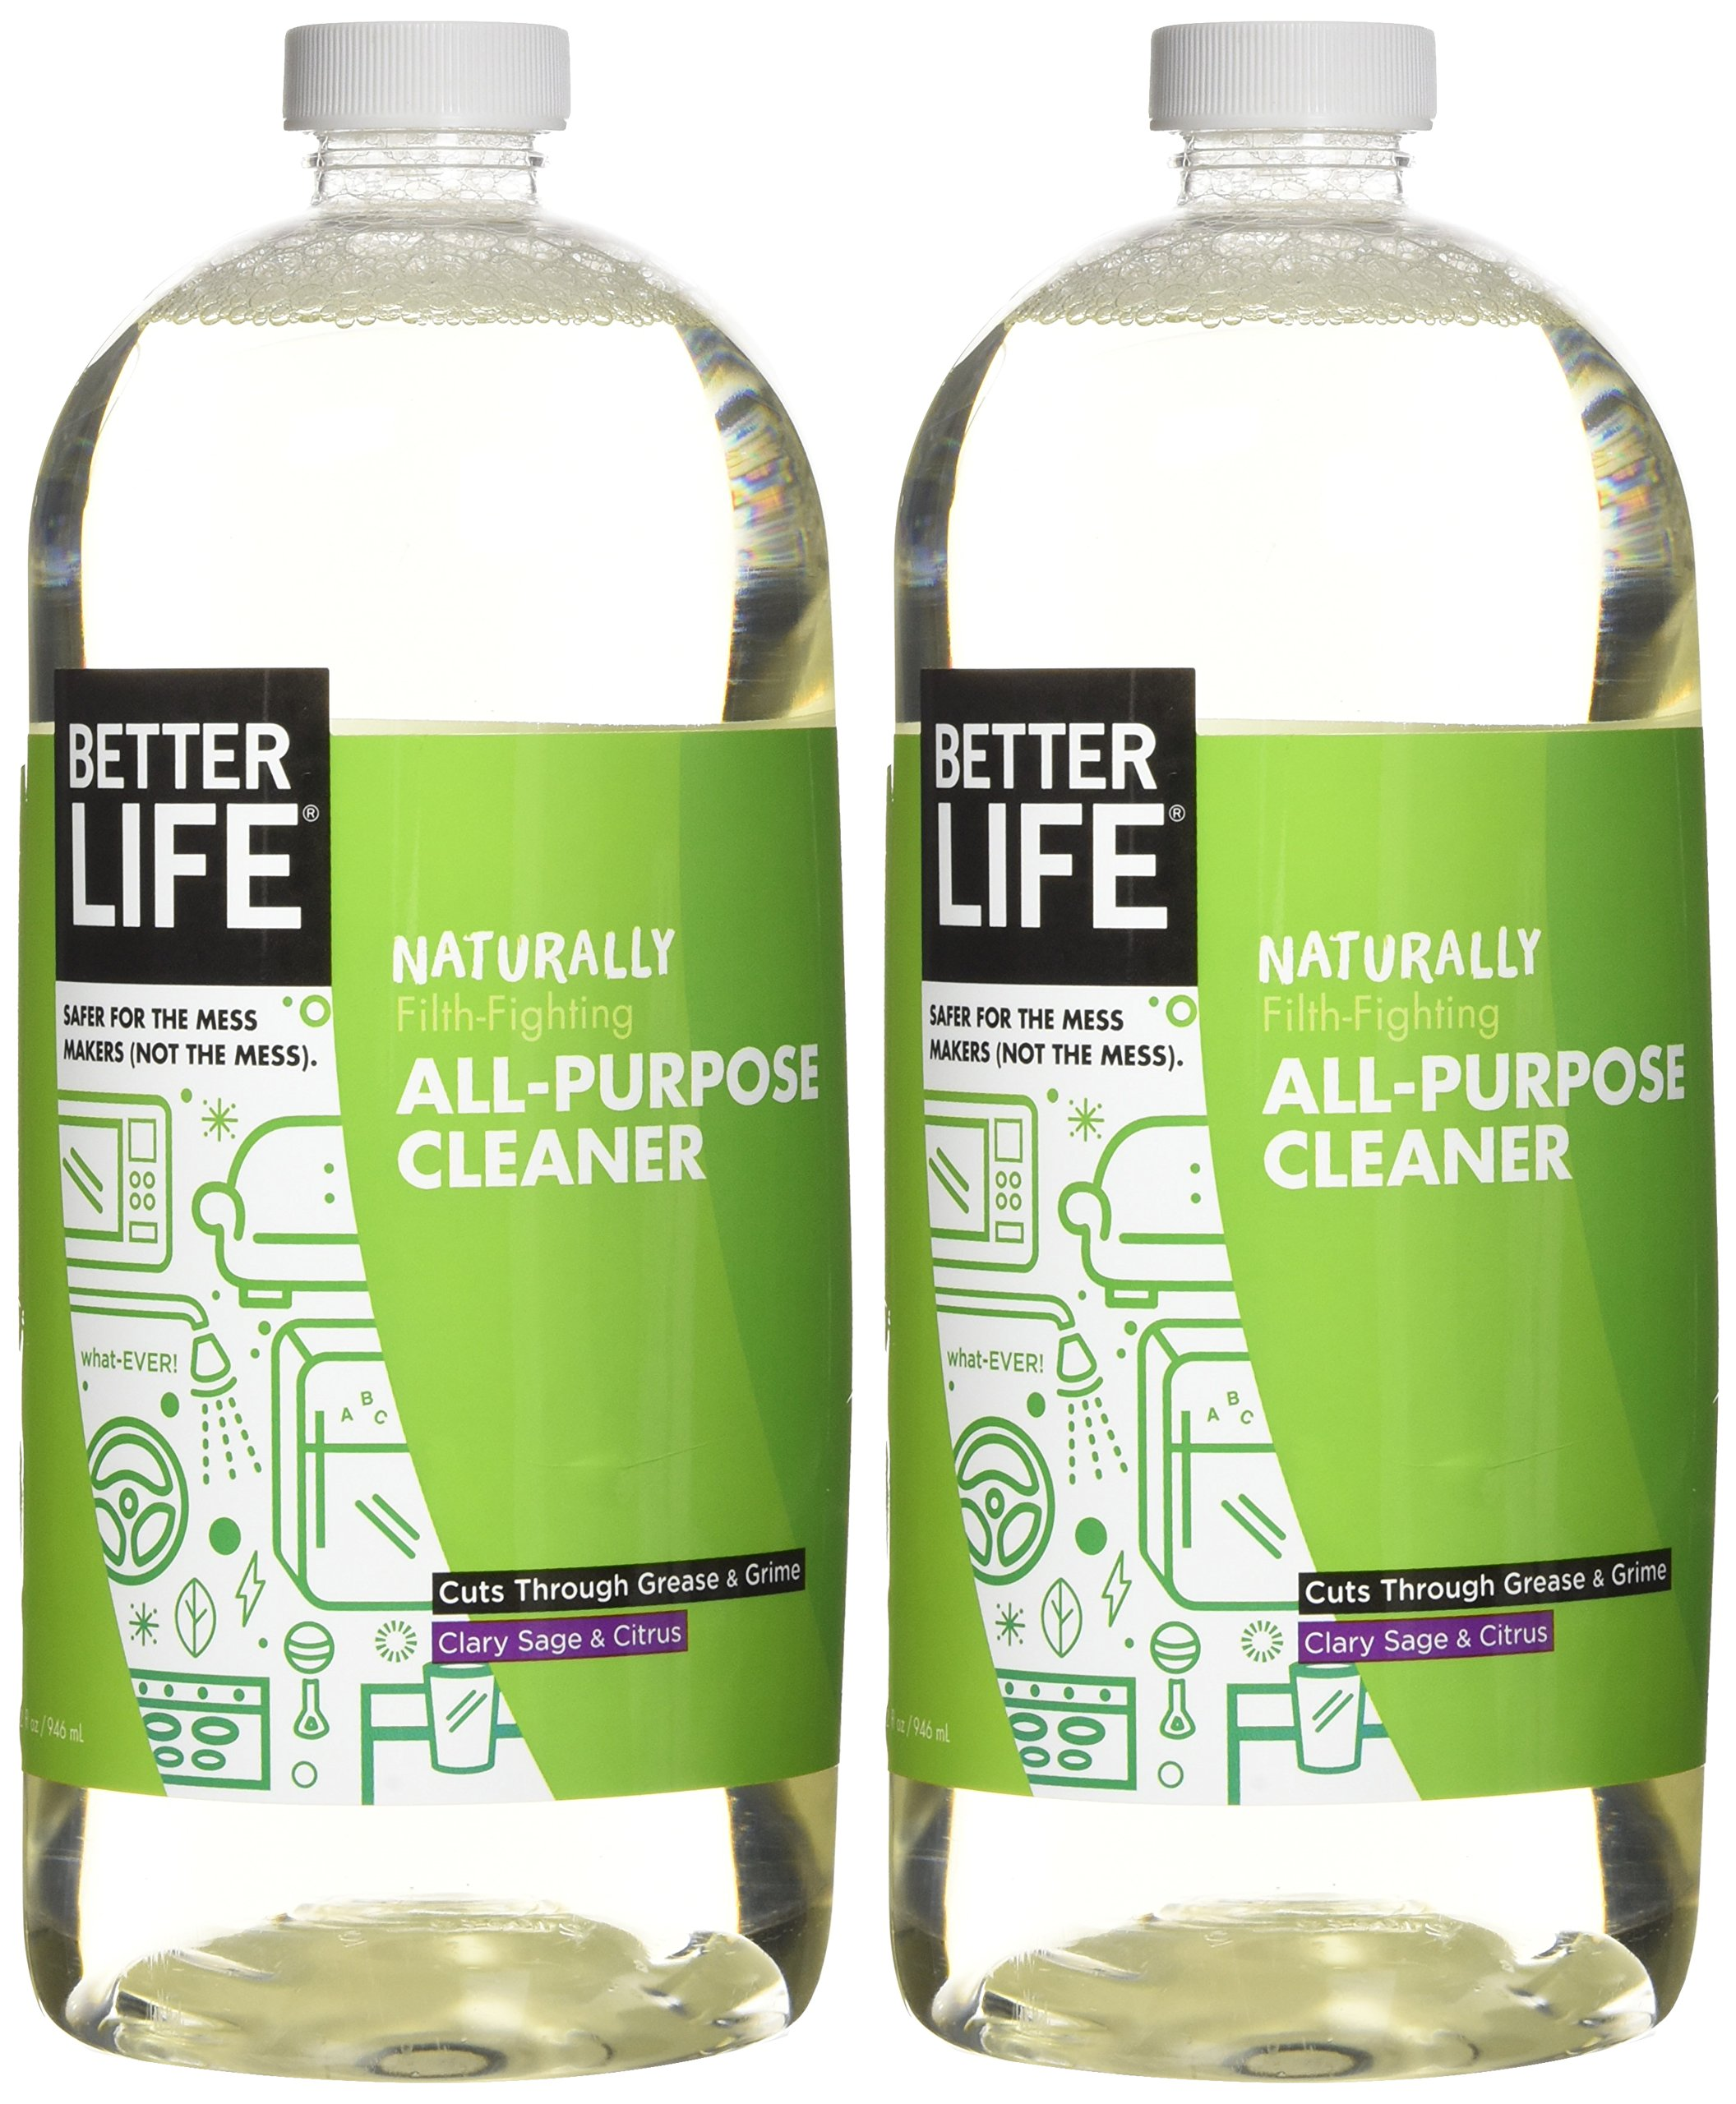 Better Life Natural All-Purpose Cleaner, Safe Around Kids & Pets, Clary Sage & Citrus, 32 Ounces (Pack of 2) by Better Life (Image #2)